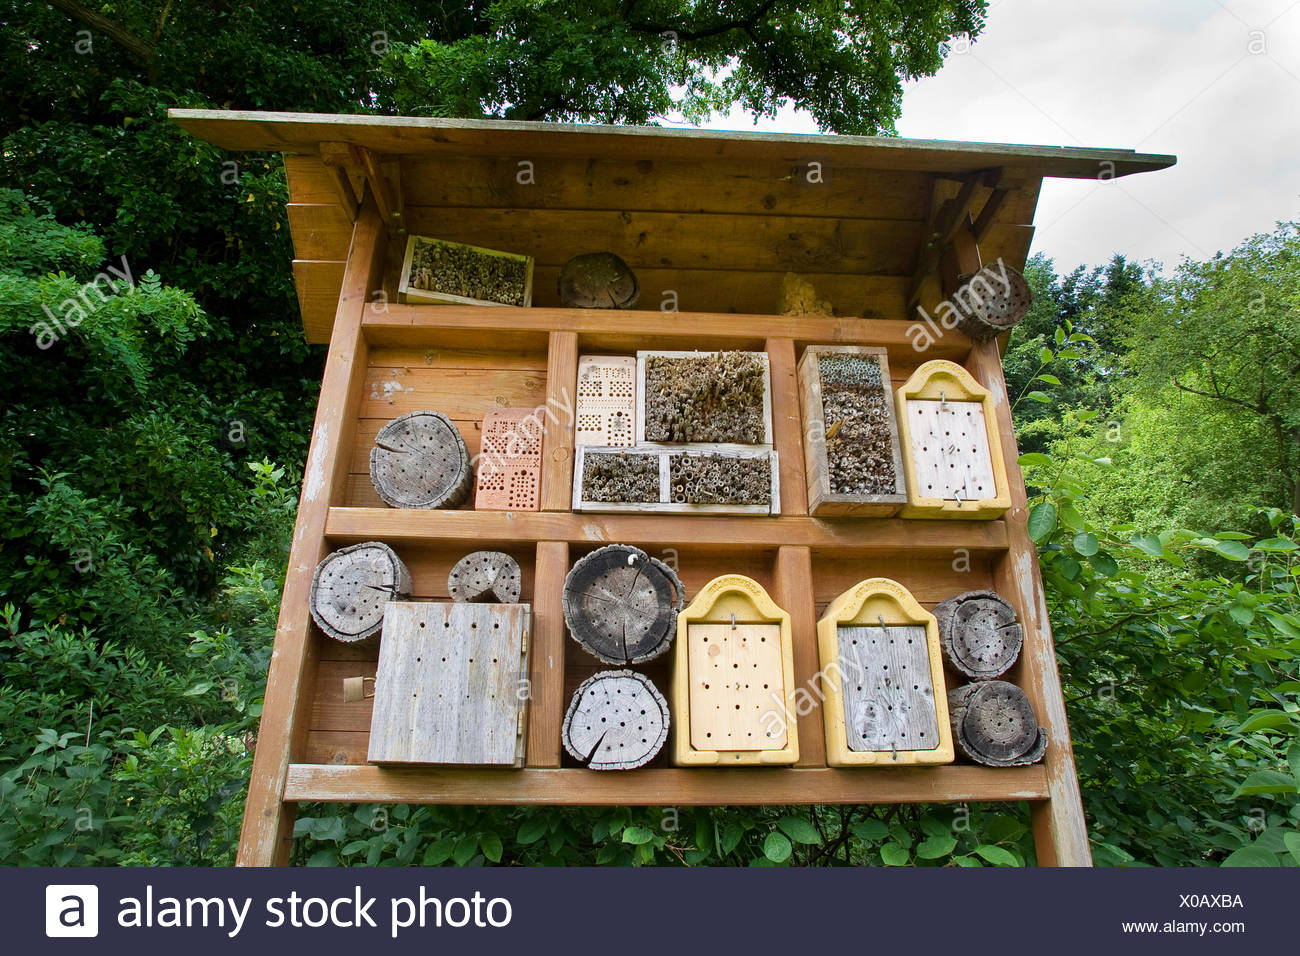 insect hotel, Germany - Stock Image